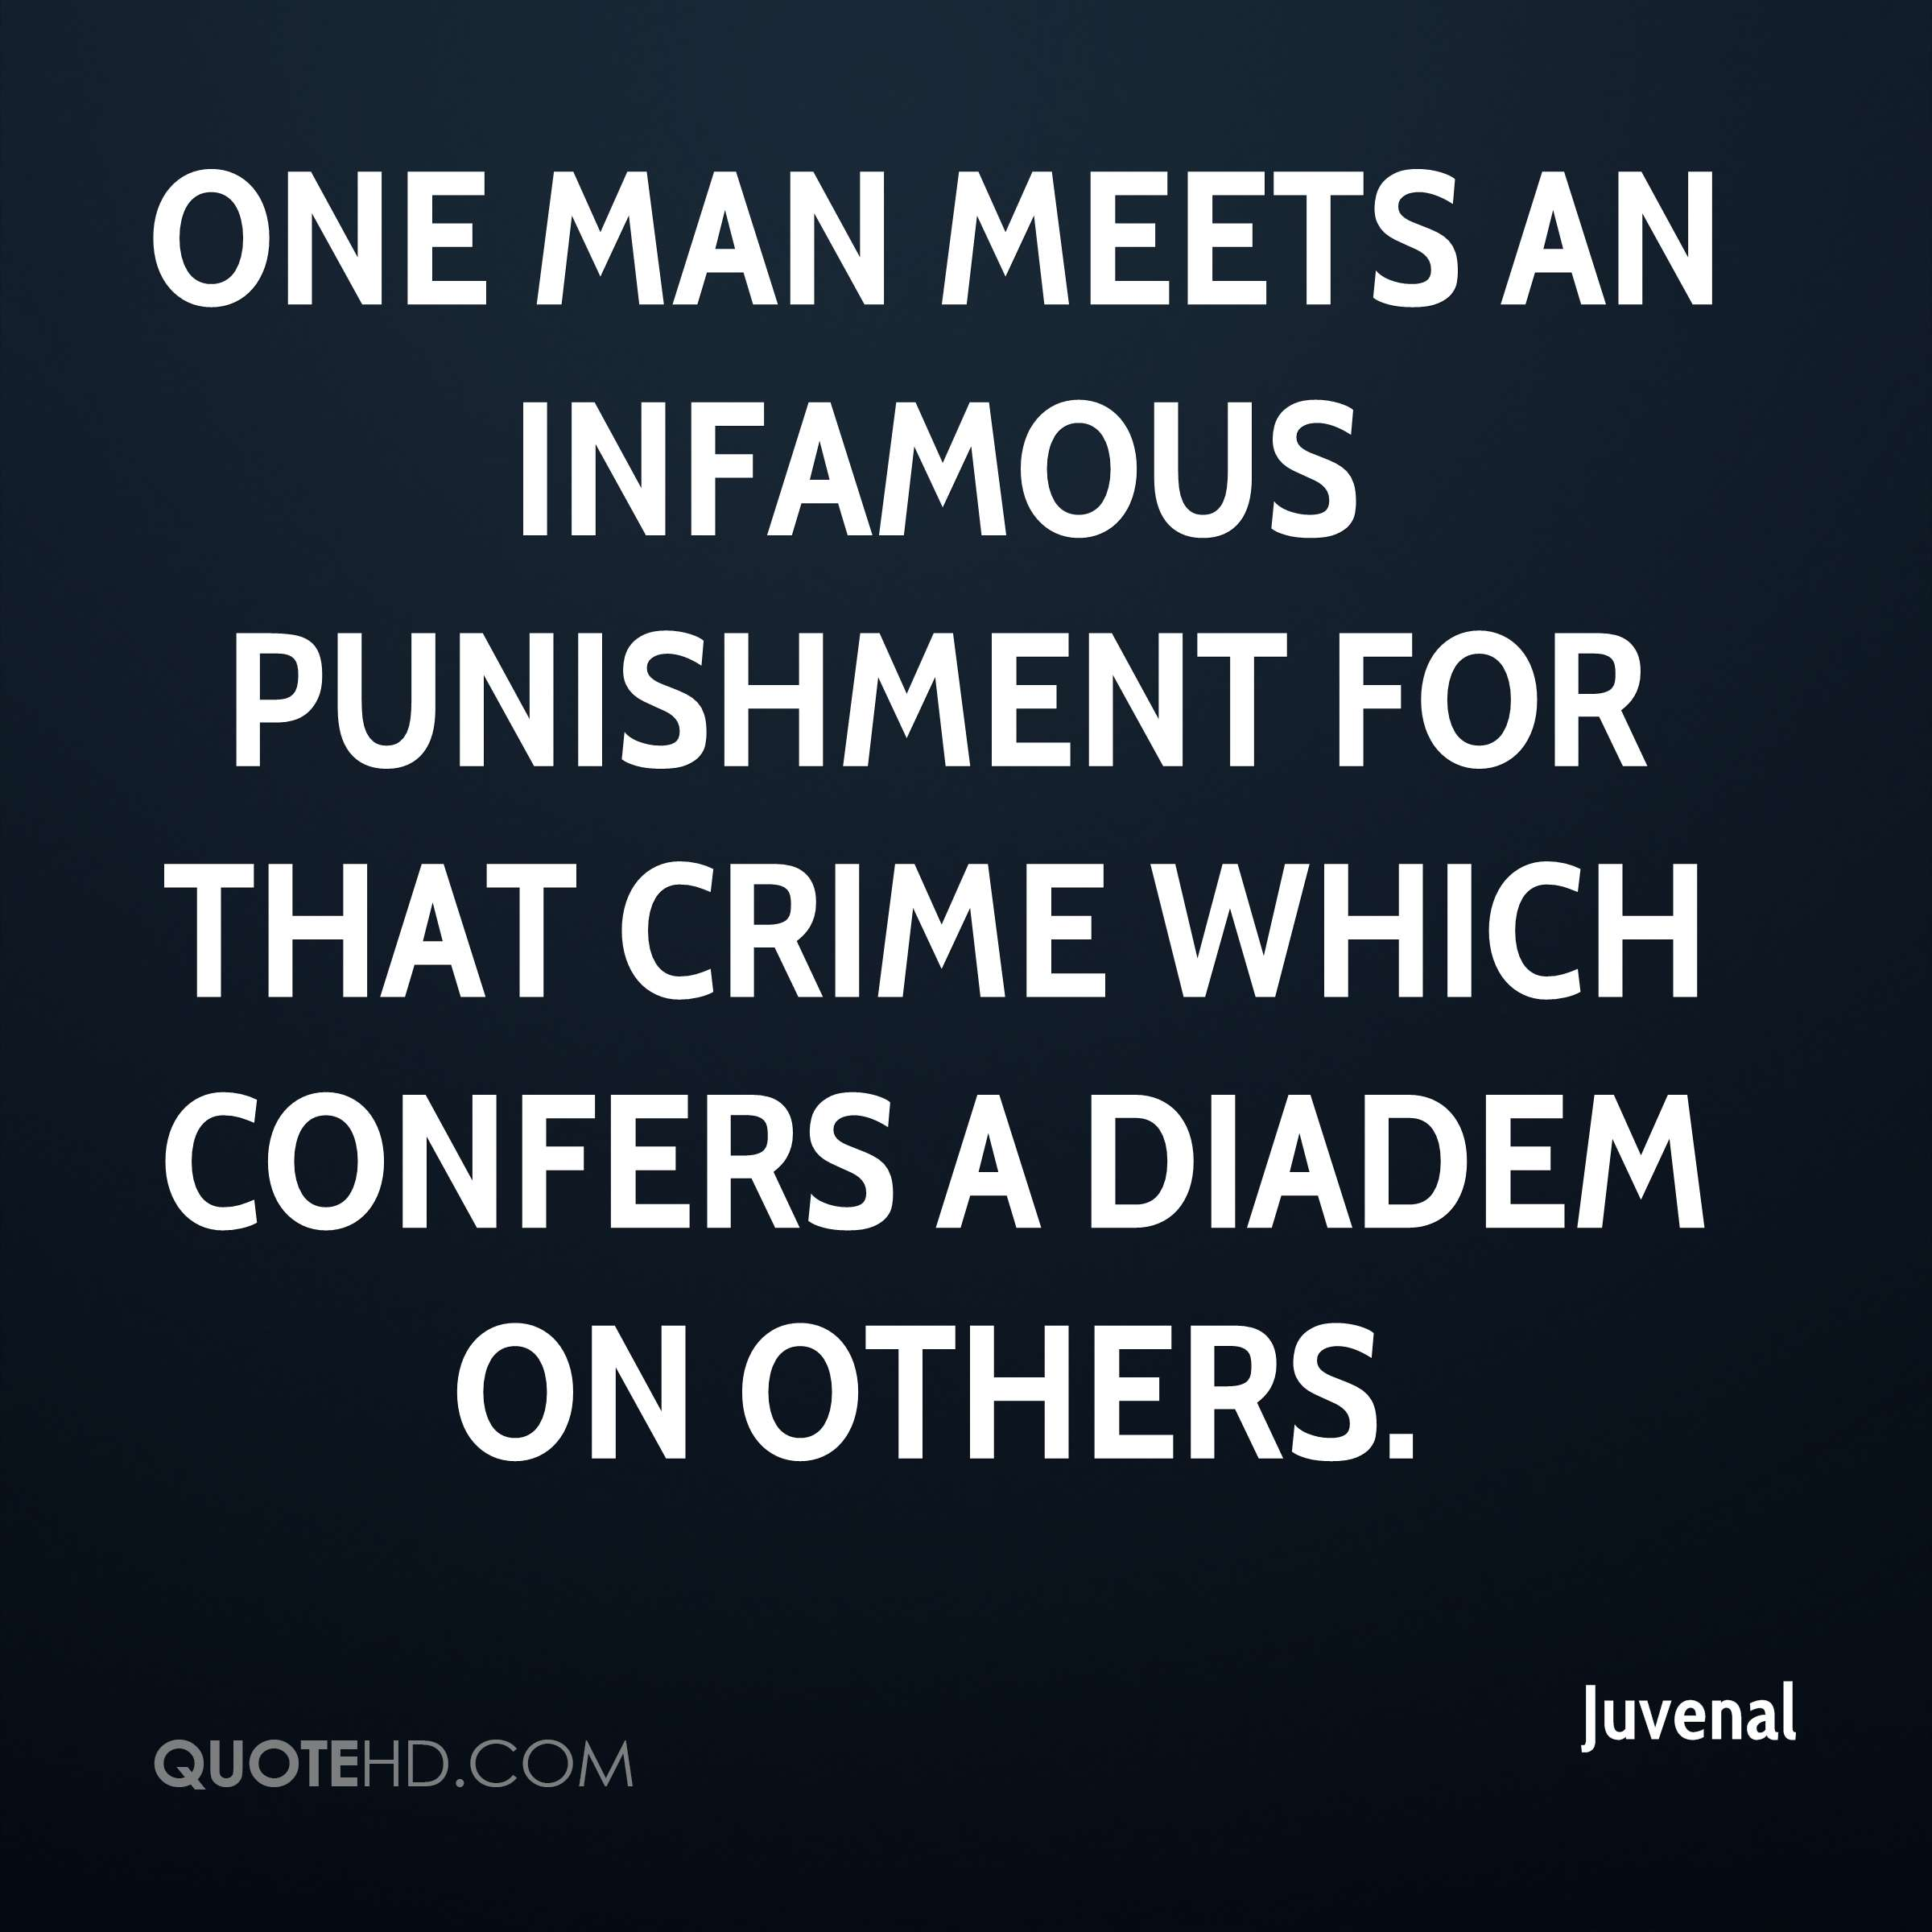 One man meets an infamous punishment for that crime which confers a diadem on others.